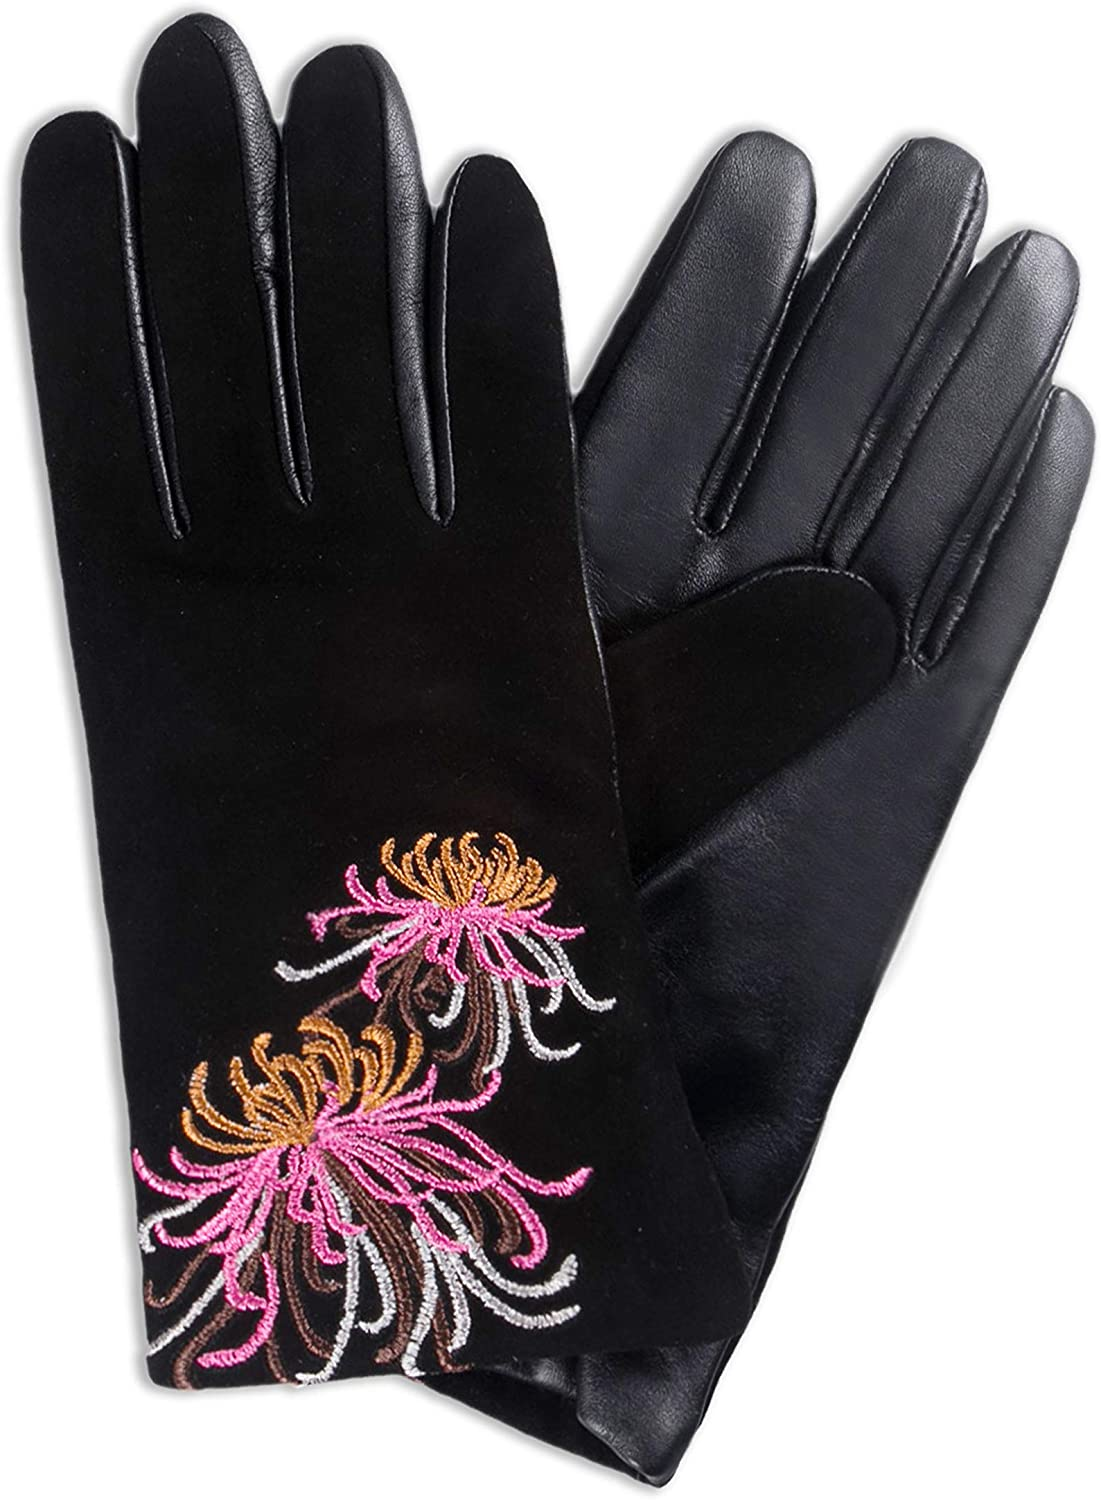 YISEVEN Women's Lambskin Suede Leather Gloves Thin Water Ripple Design